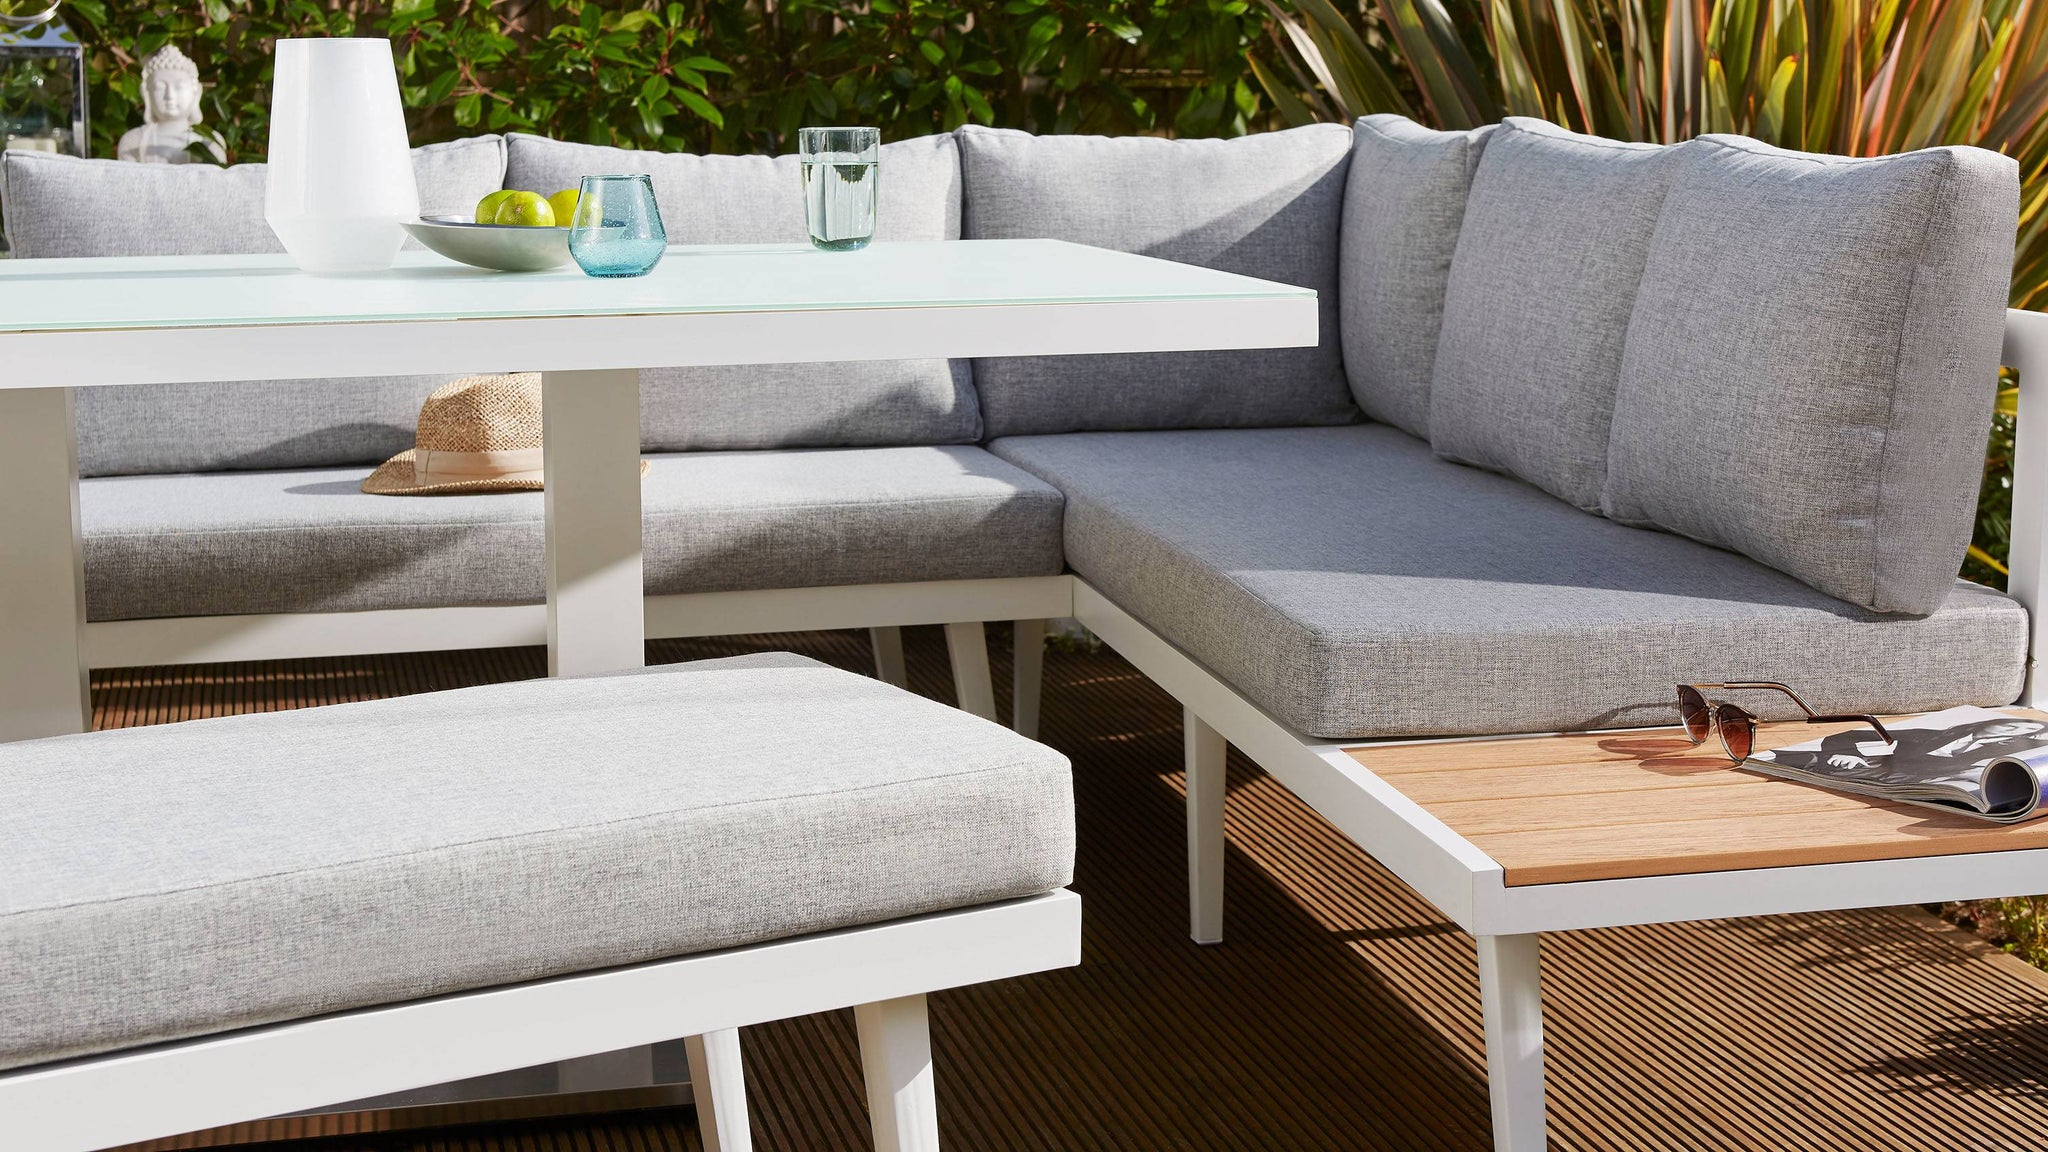 Light grey dining garden bench